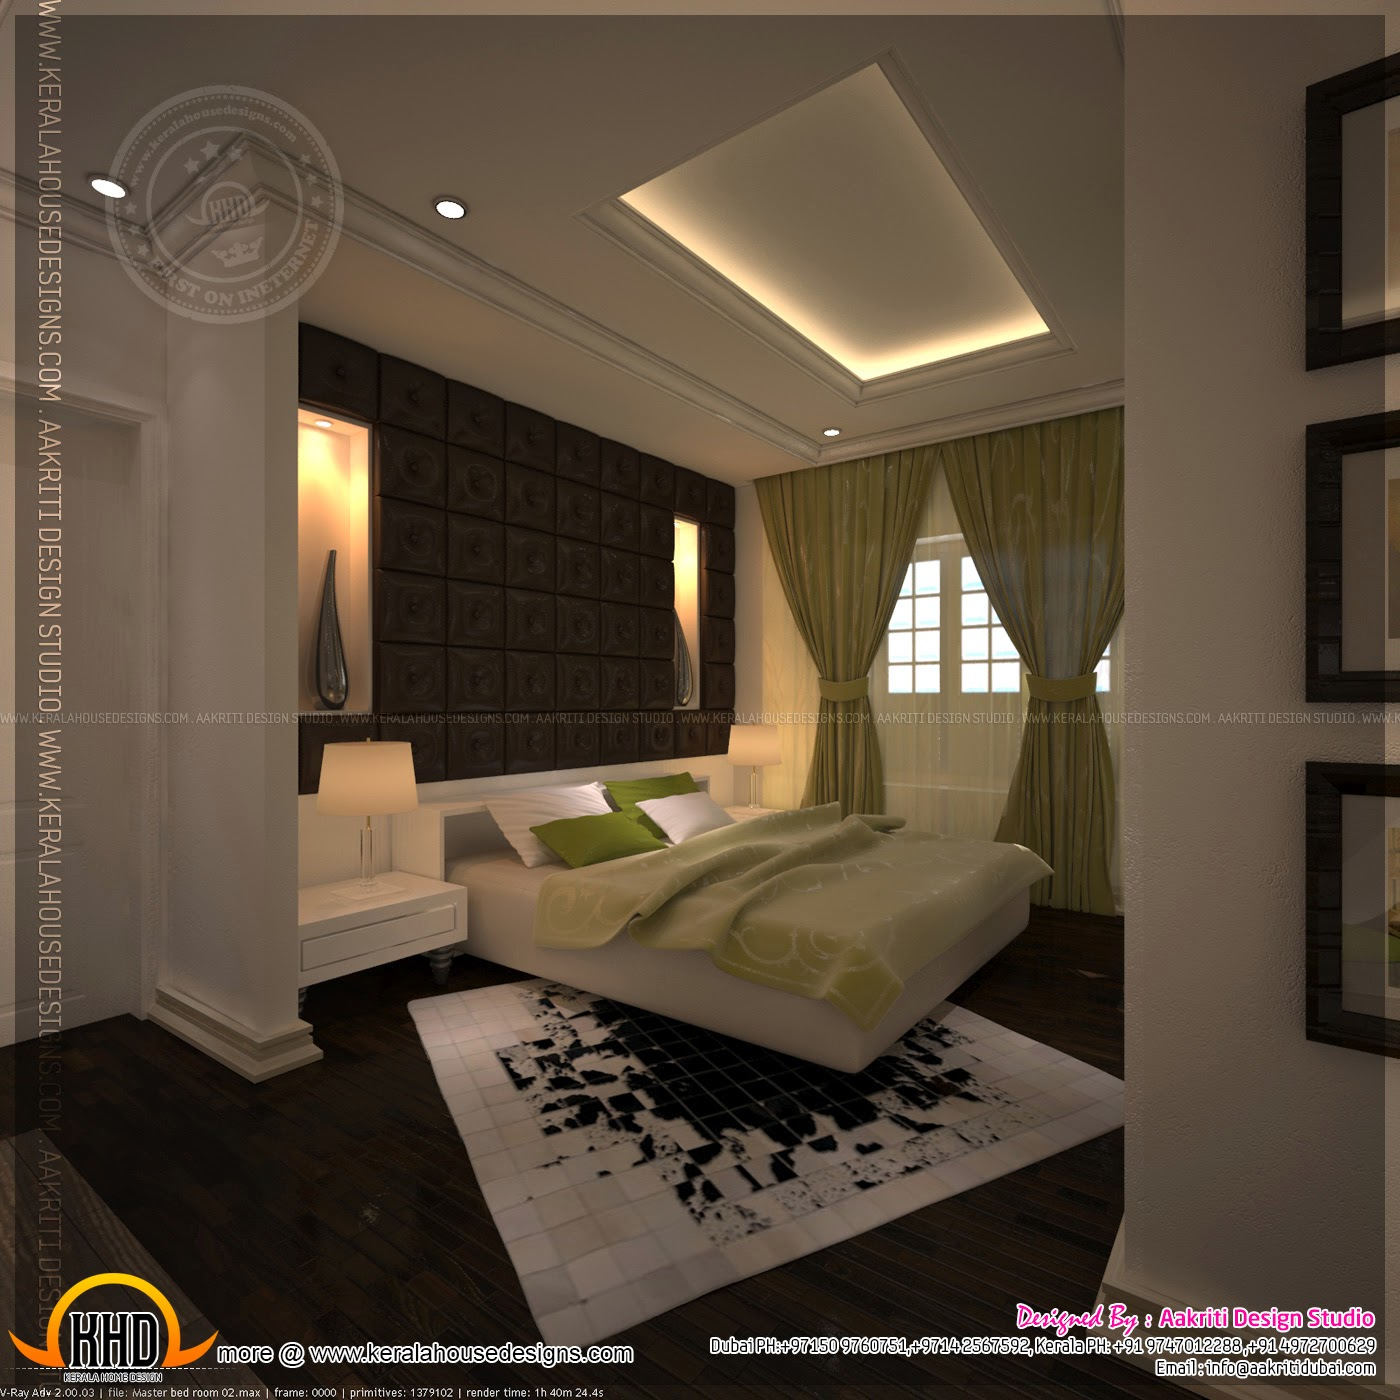 Master bedroom and bathroom interior design kerala home for House and home bedrooms